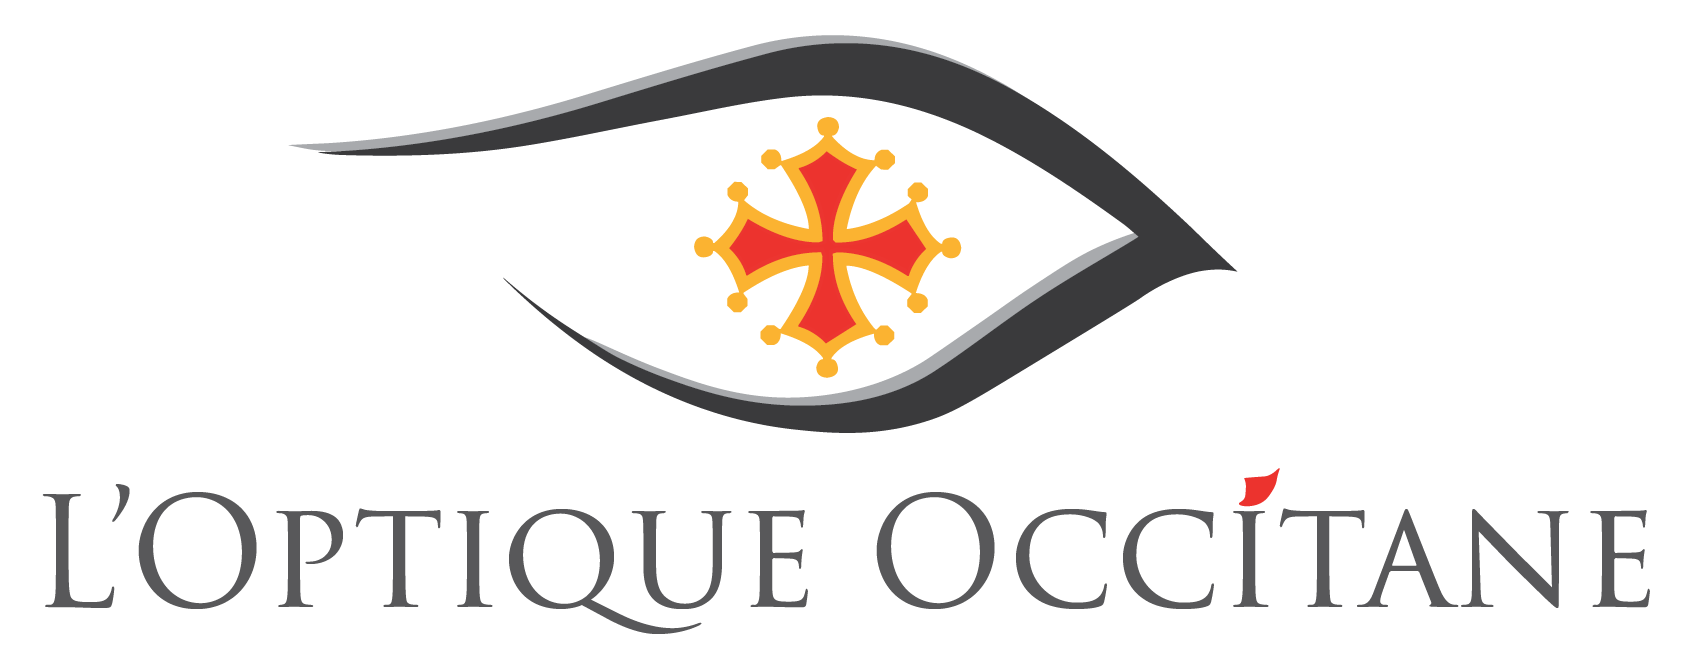 L'Optique Occitane